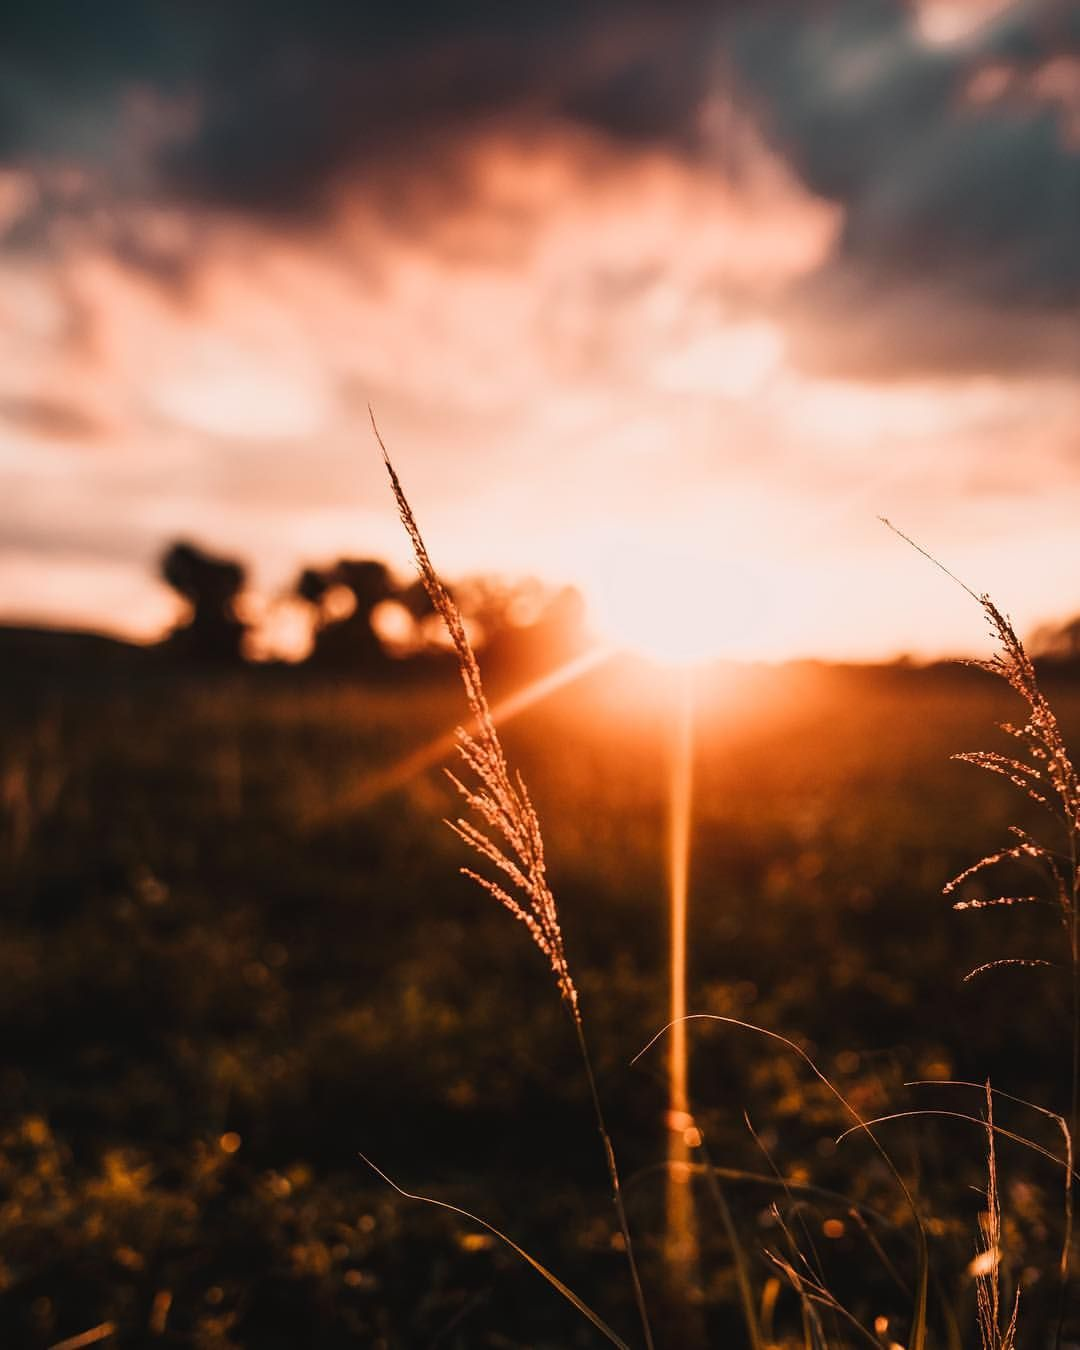 West Palm Beach Sunset Macro Photography Wheat Field 6 311 Likes 141 Comments Erick Ramirez